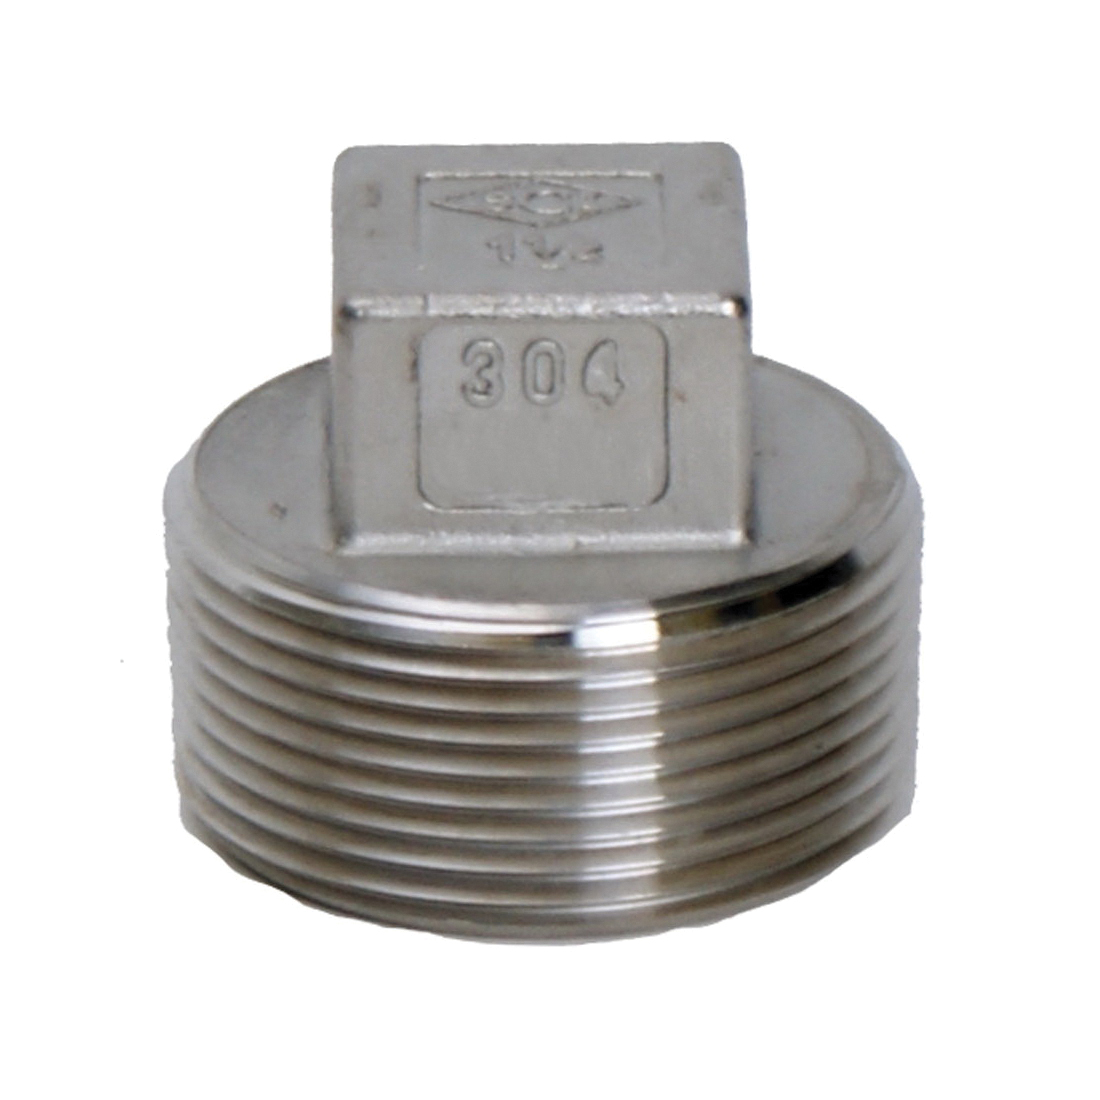 Smith-Cooper® S3114SP040 S3014SP Square Head Plug, 4 in, FNPT, 150 lb, 304 Stainless Steel